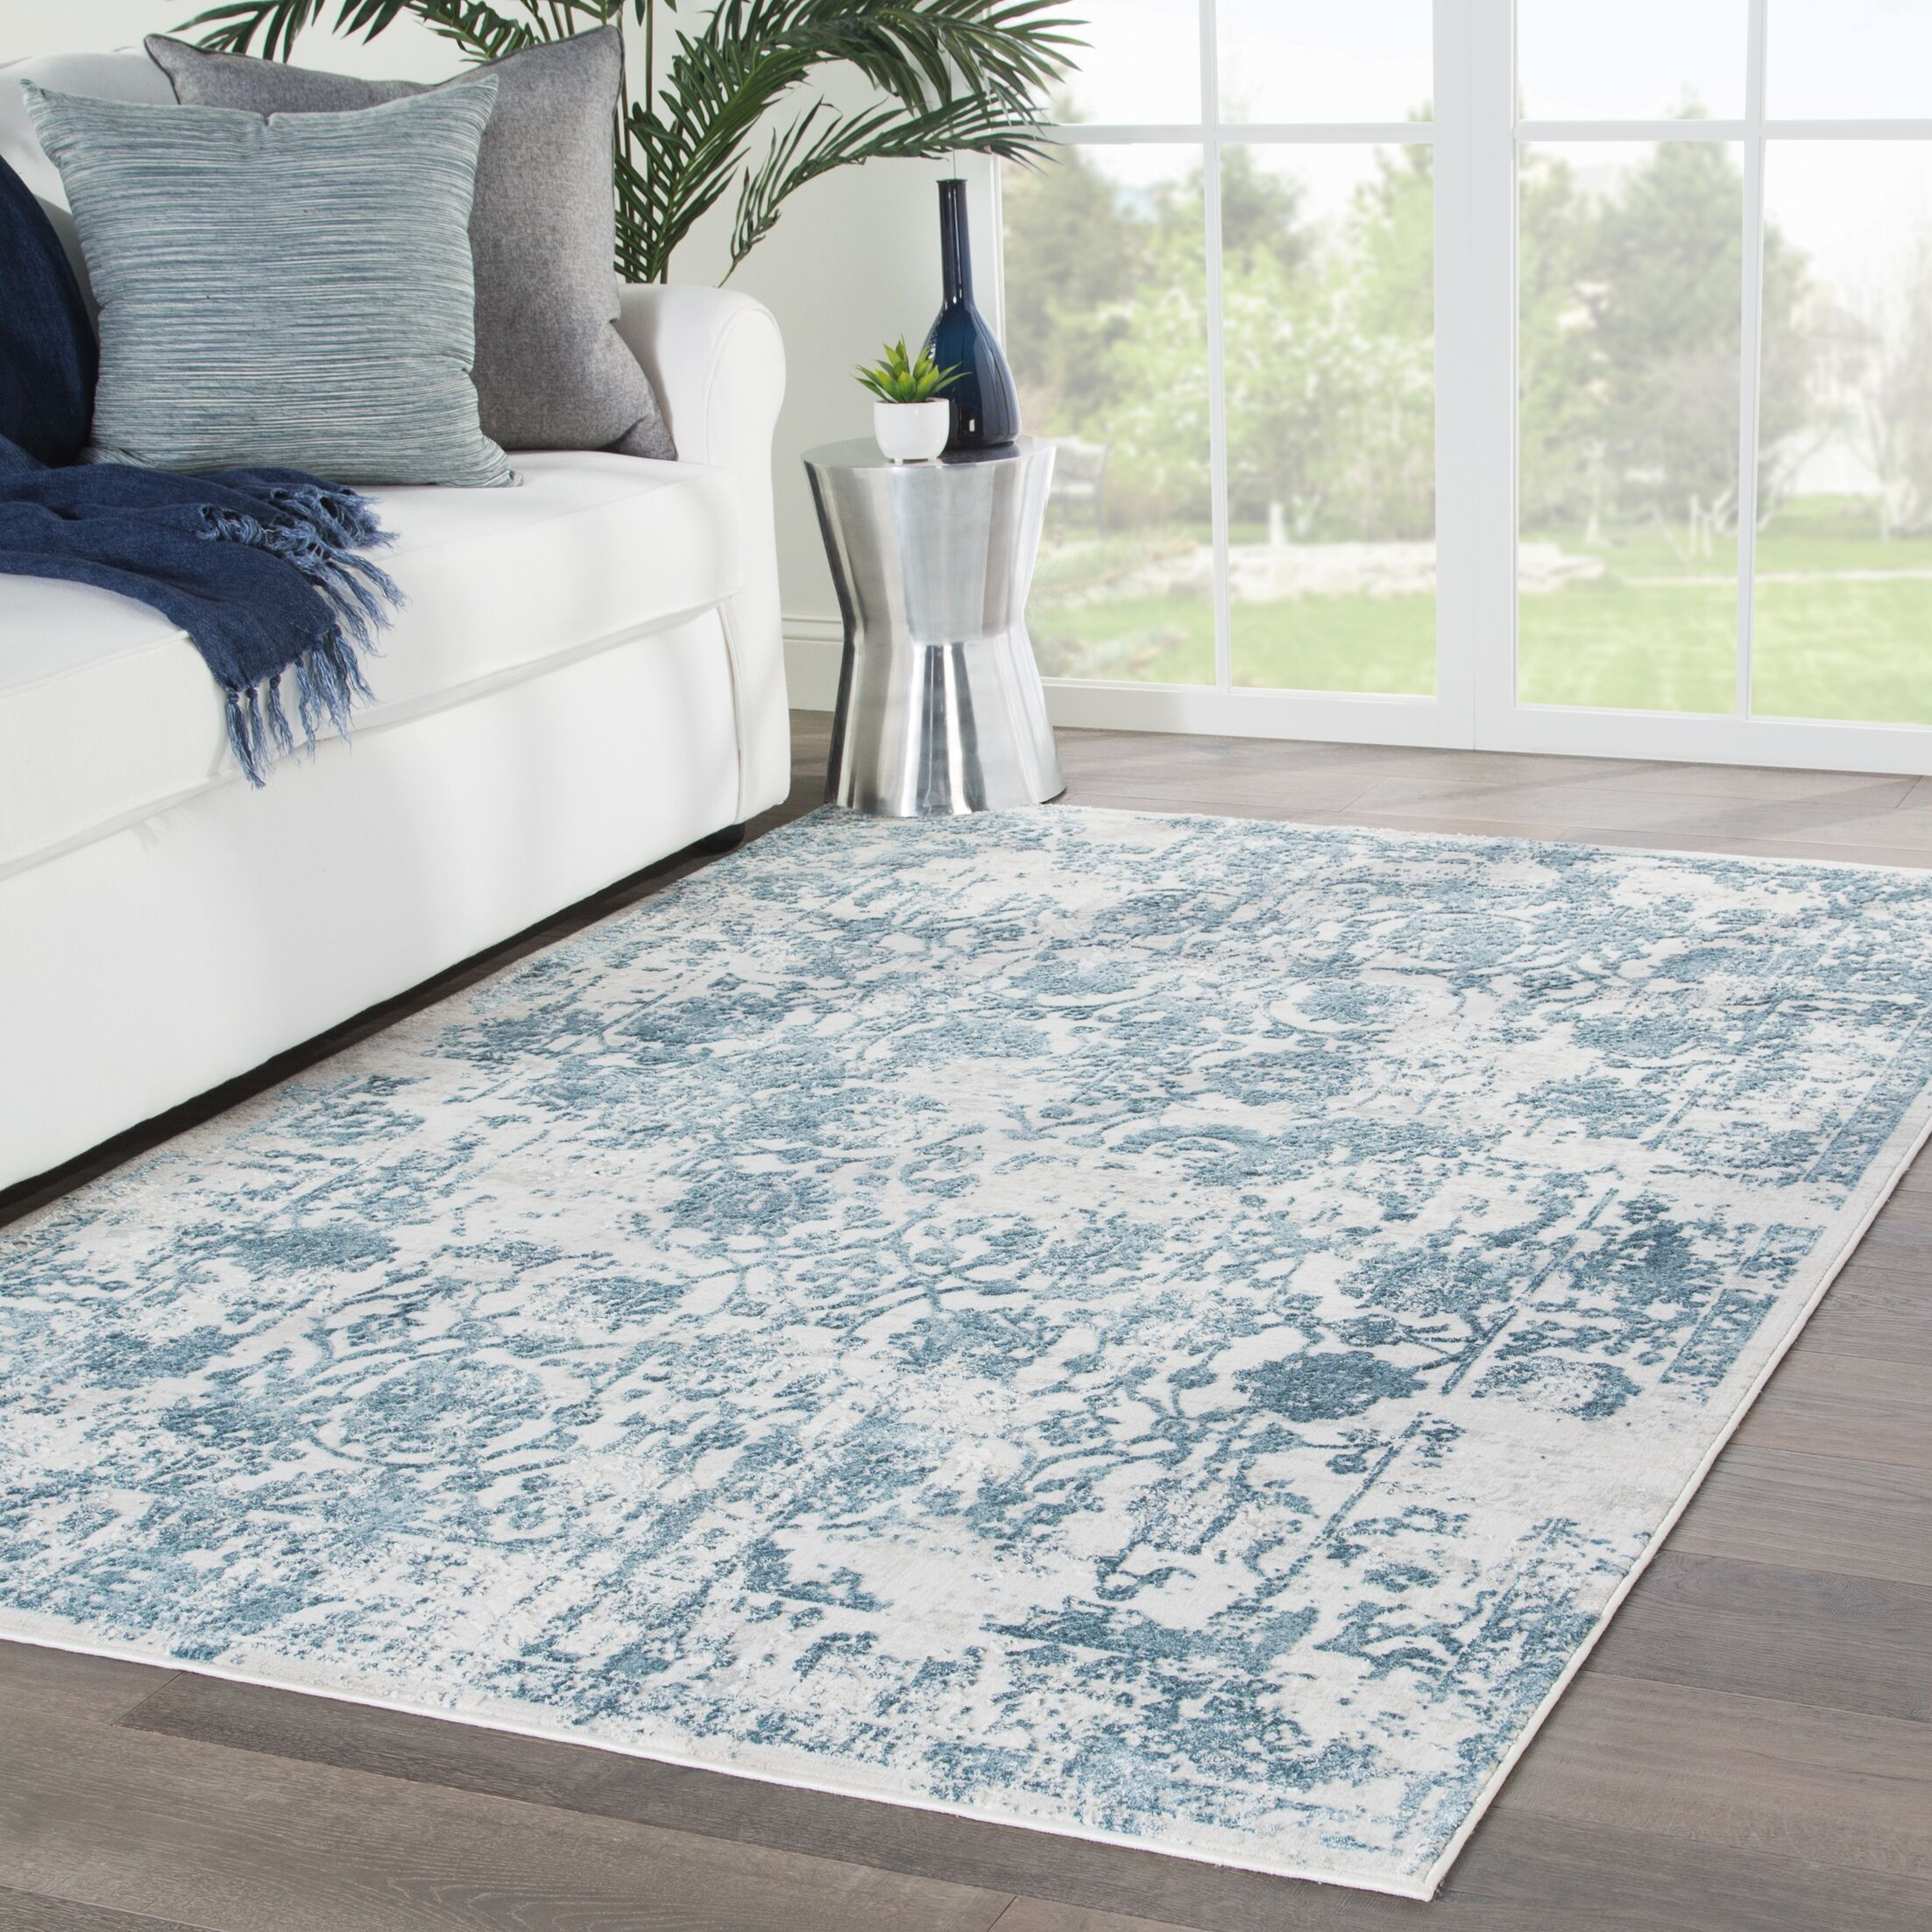 Dowdy Blue/Beige Area Rug Rug Size: Rectangle 7'6